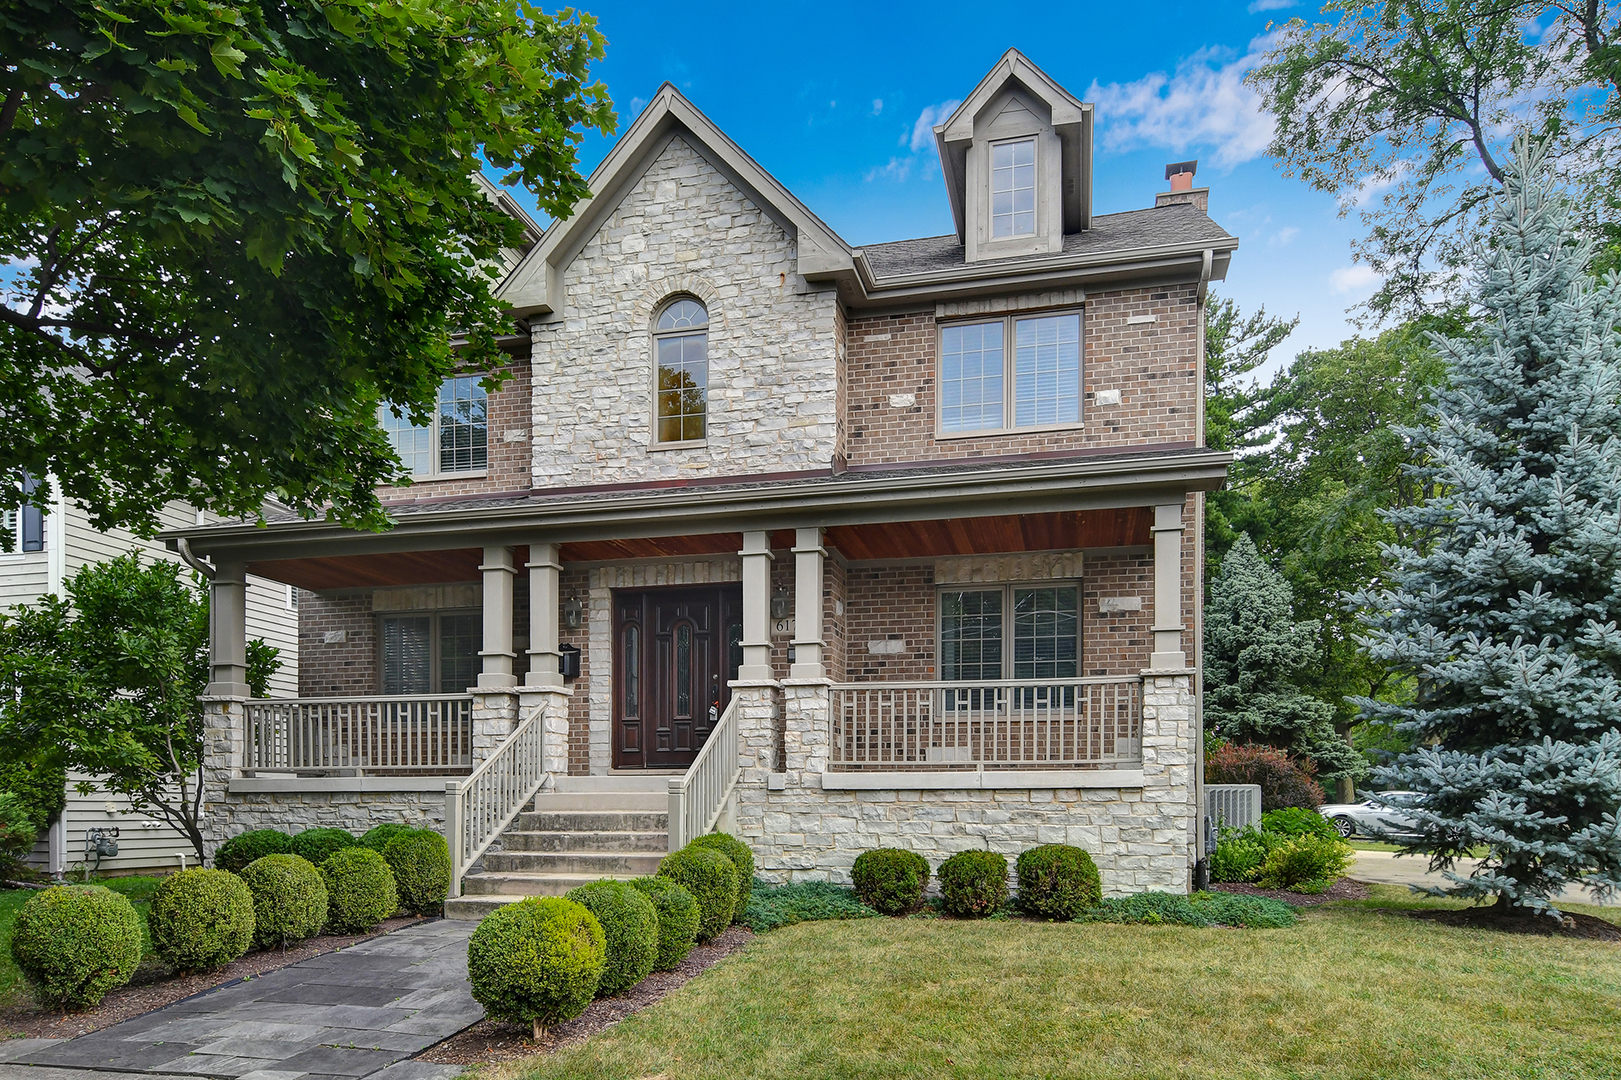 617 Ravine Road, Hinsdale, Illinois 60521